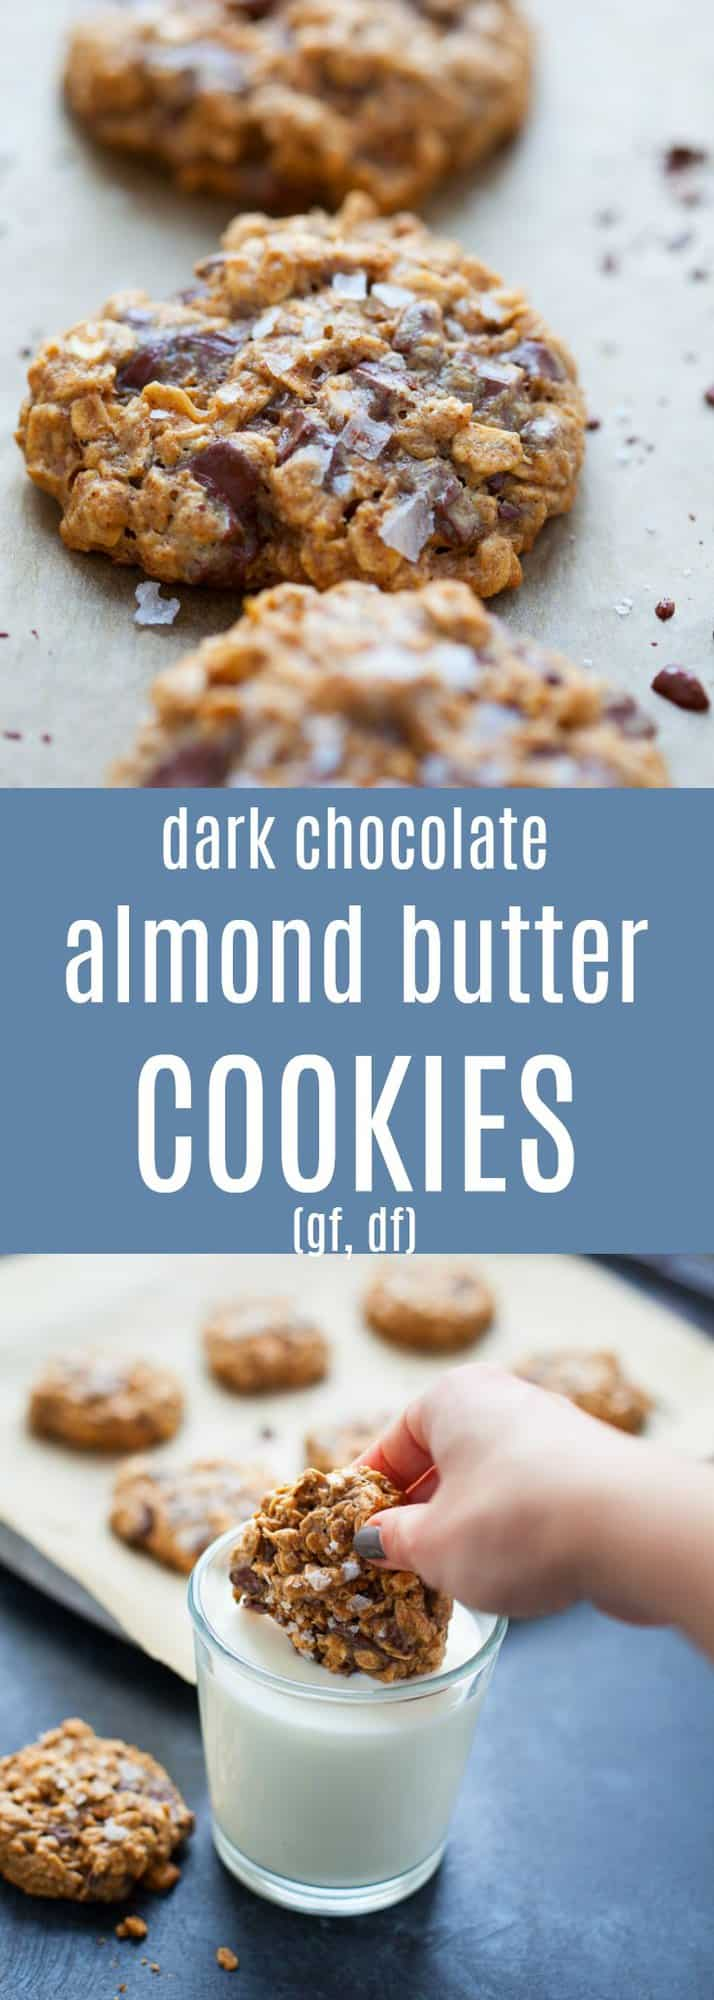 Ooey, gooey, melty chocolate chunk cookie goodness. Whip up a batch of my Dark Chocolate Almond Butter Cookies with Sea Salt this Valentine's Day (or any night you're craving a delicious treat!)